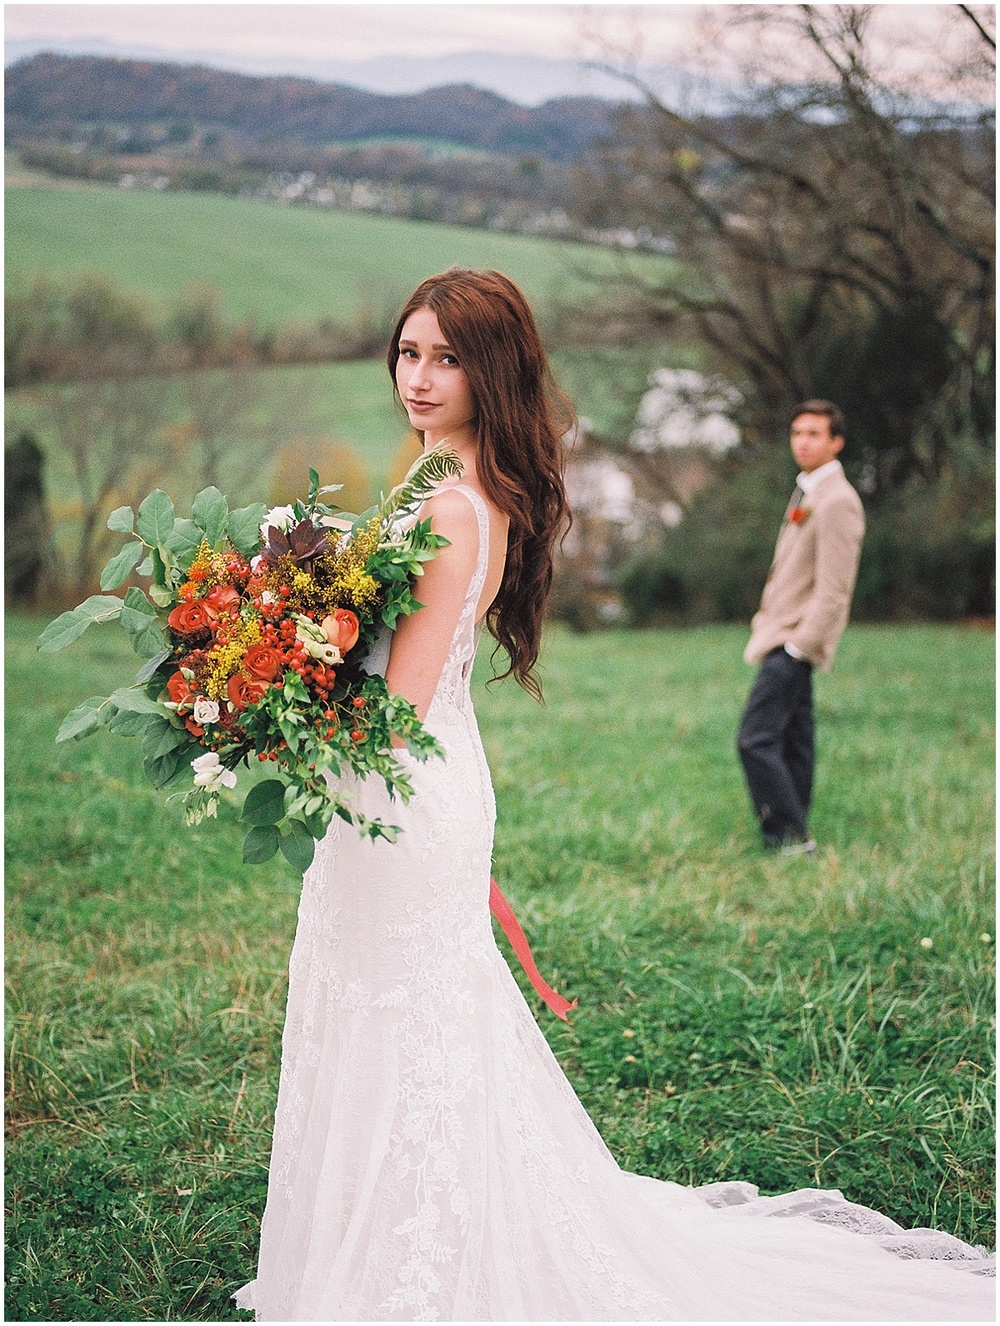 Abigail_Malone_Fall_Wedding_Knoxville_Film_Portra_400_Kodak_Mountain_Views_Abby_Elizabeth-5.jpg